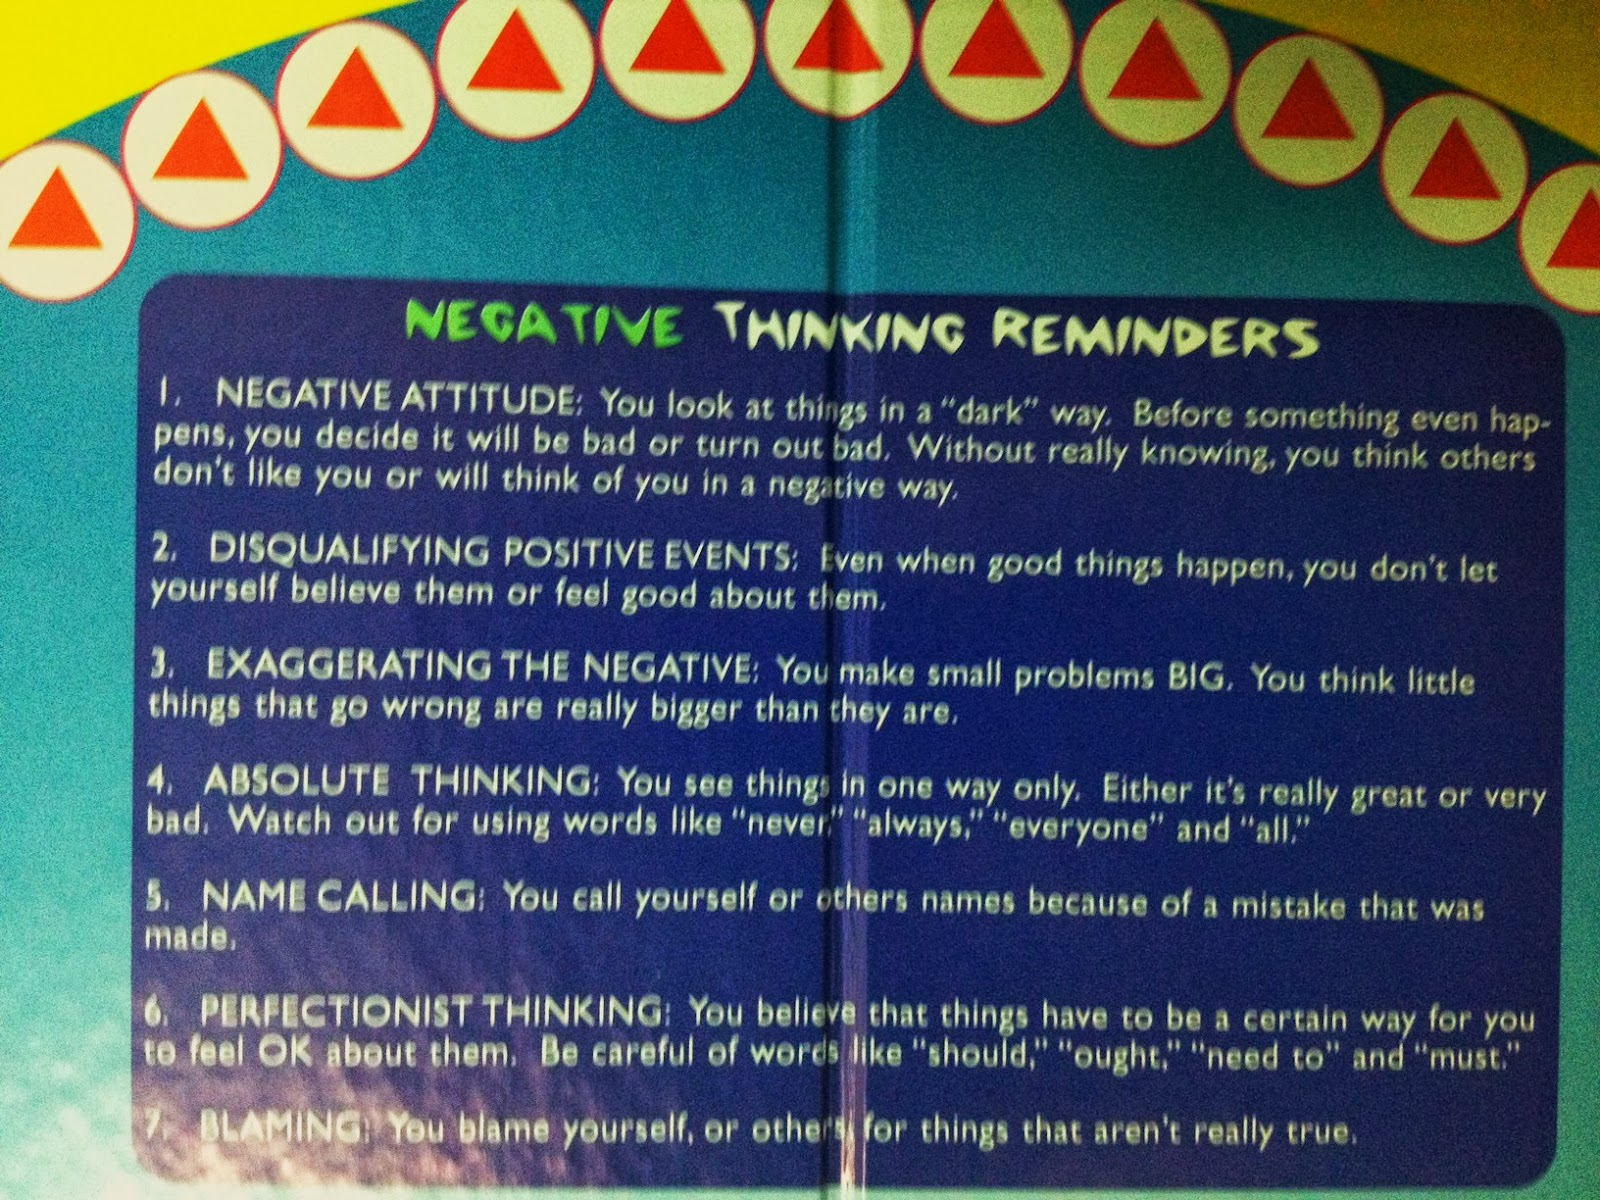 Positive Thinking\u0027 Board Game Review | The Responsive Counselor